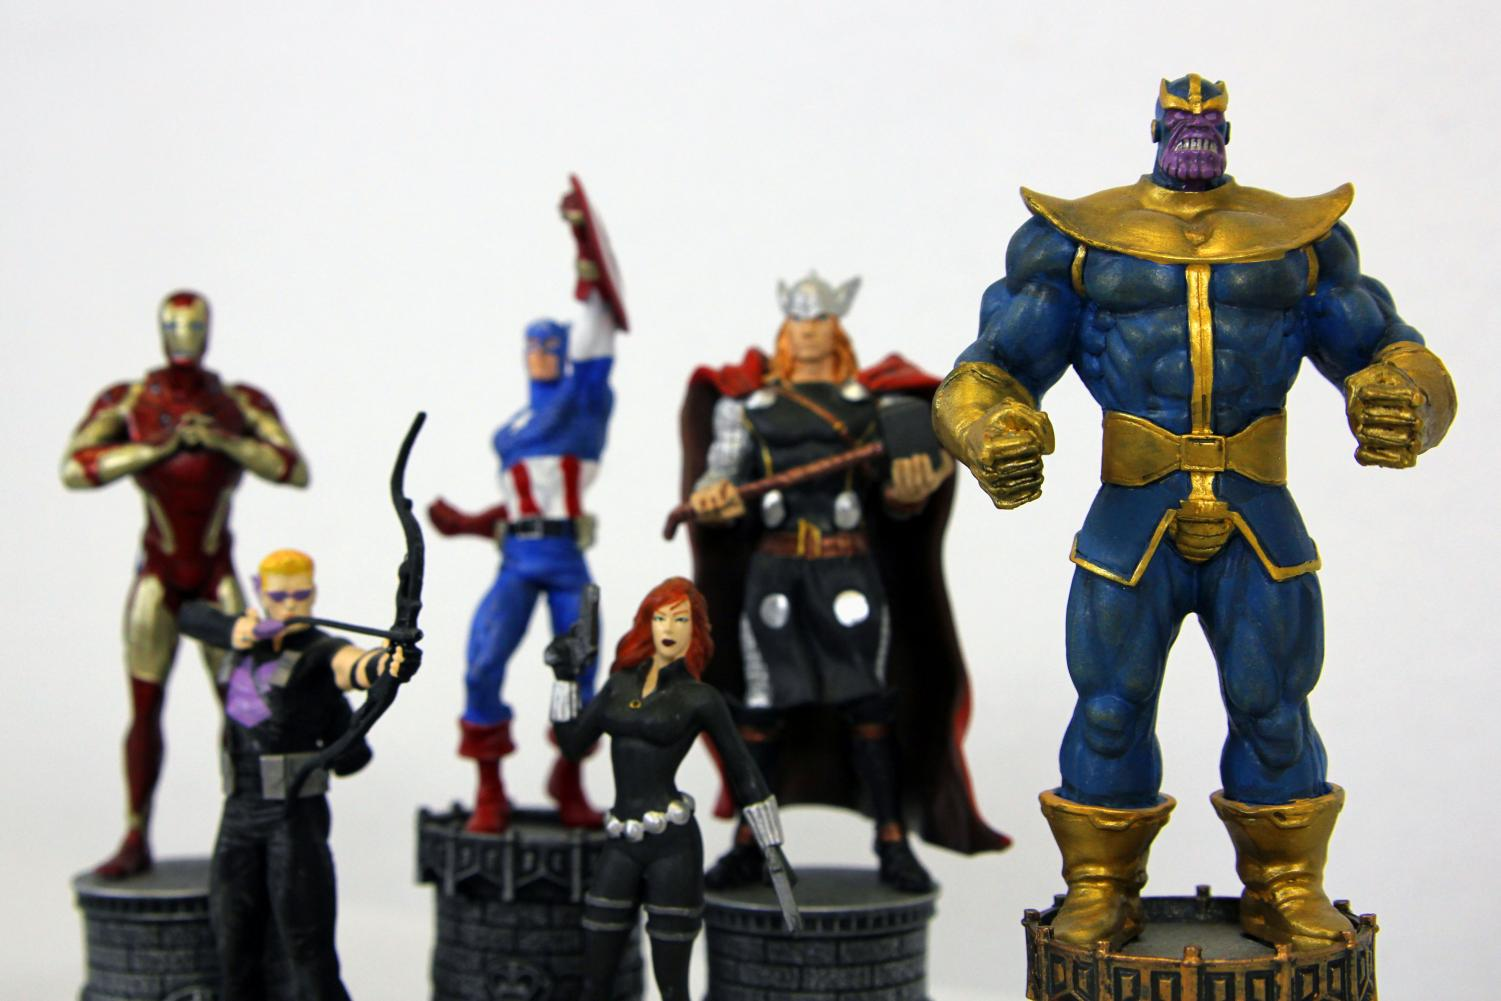 Thanos returns as the main antagonist of